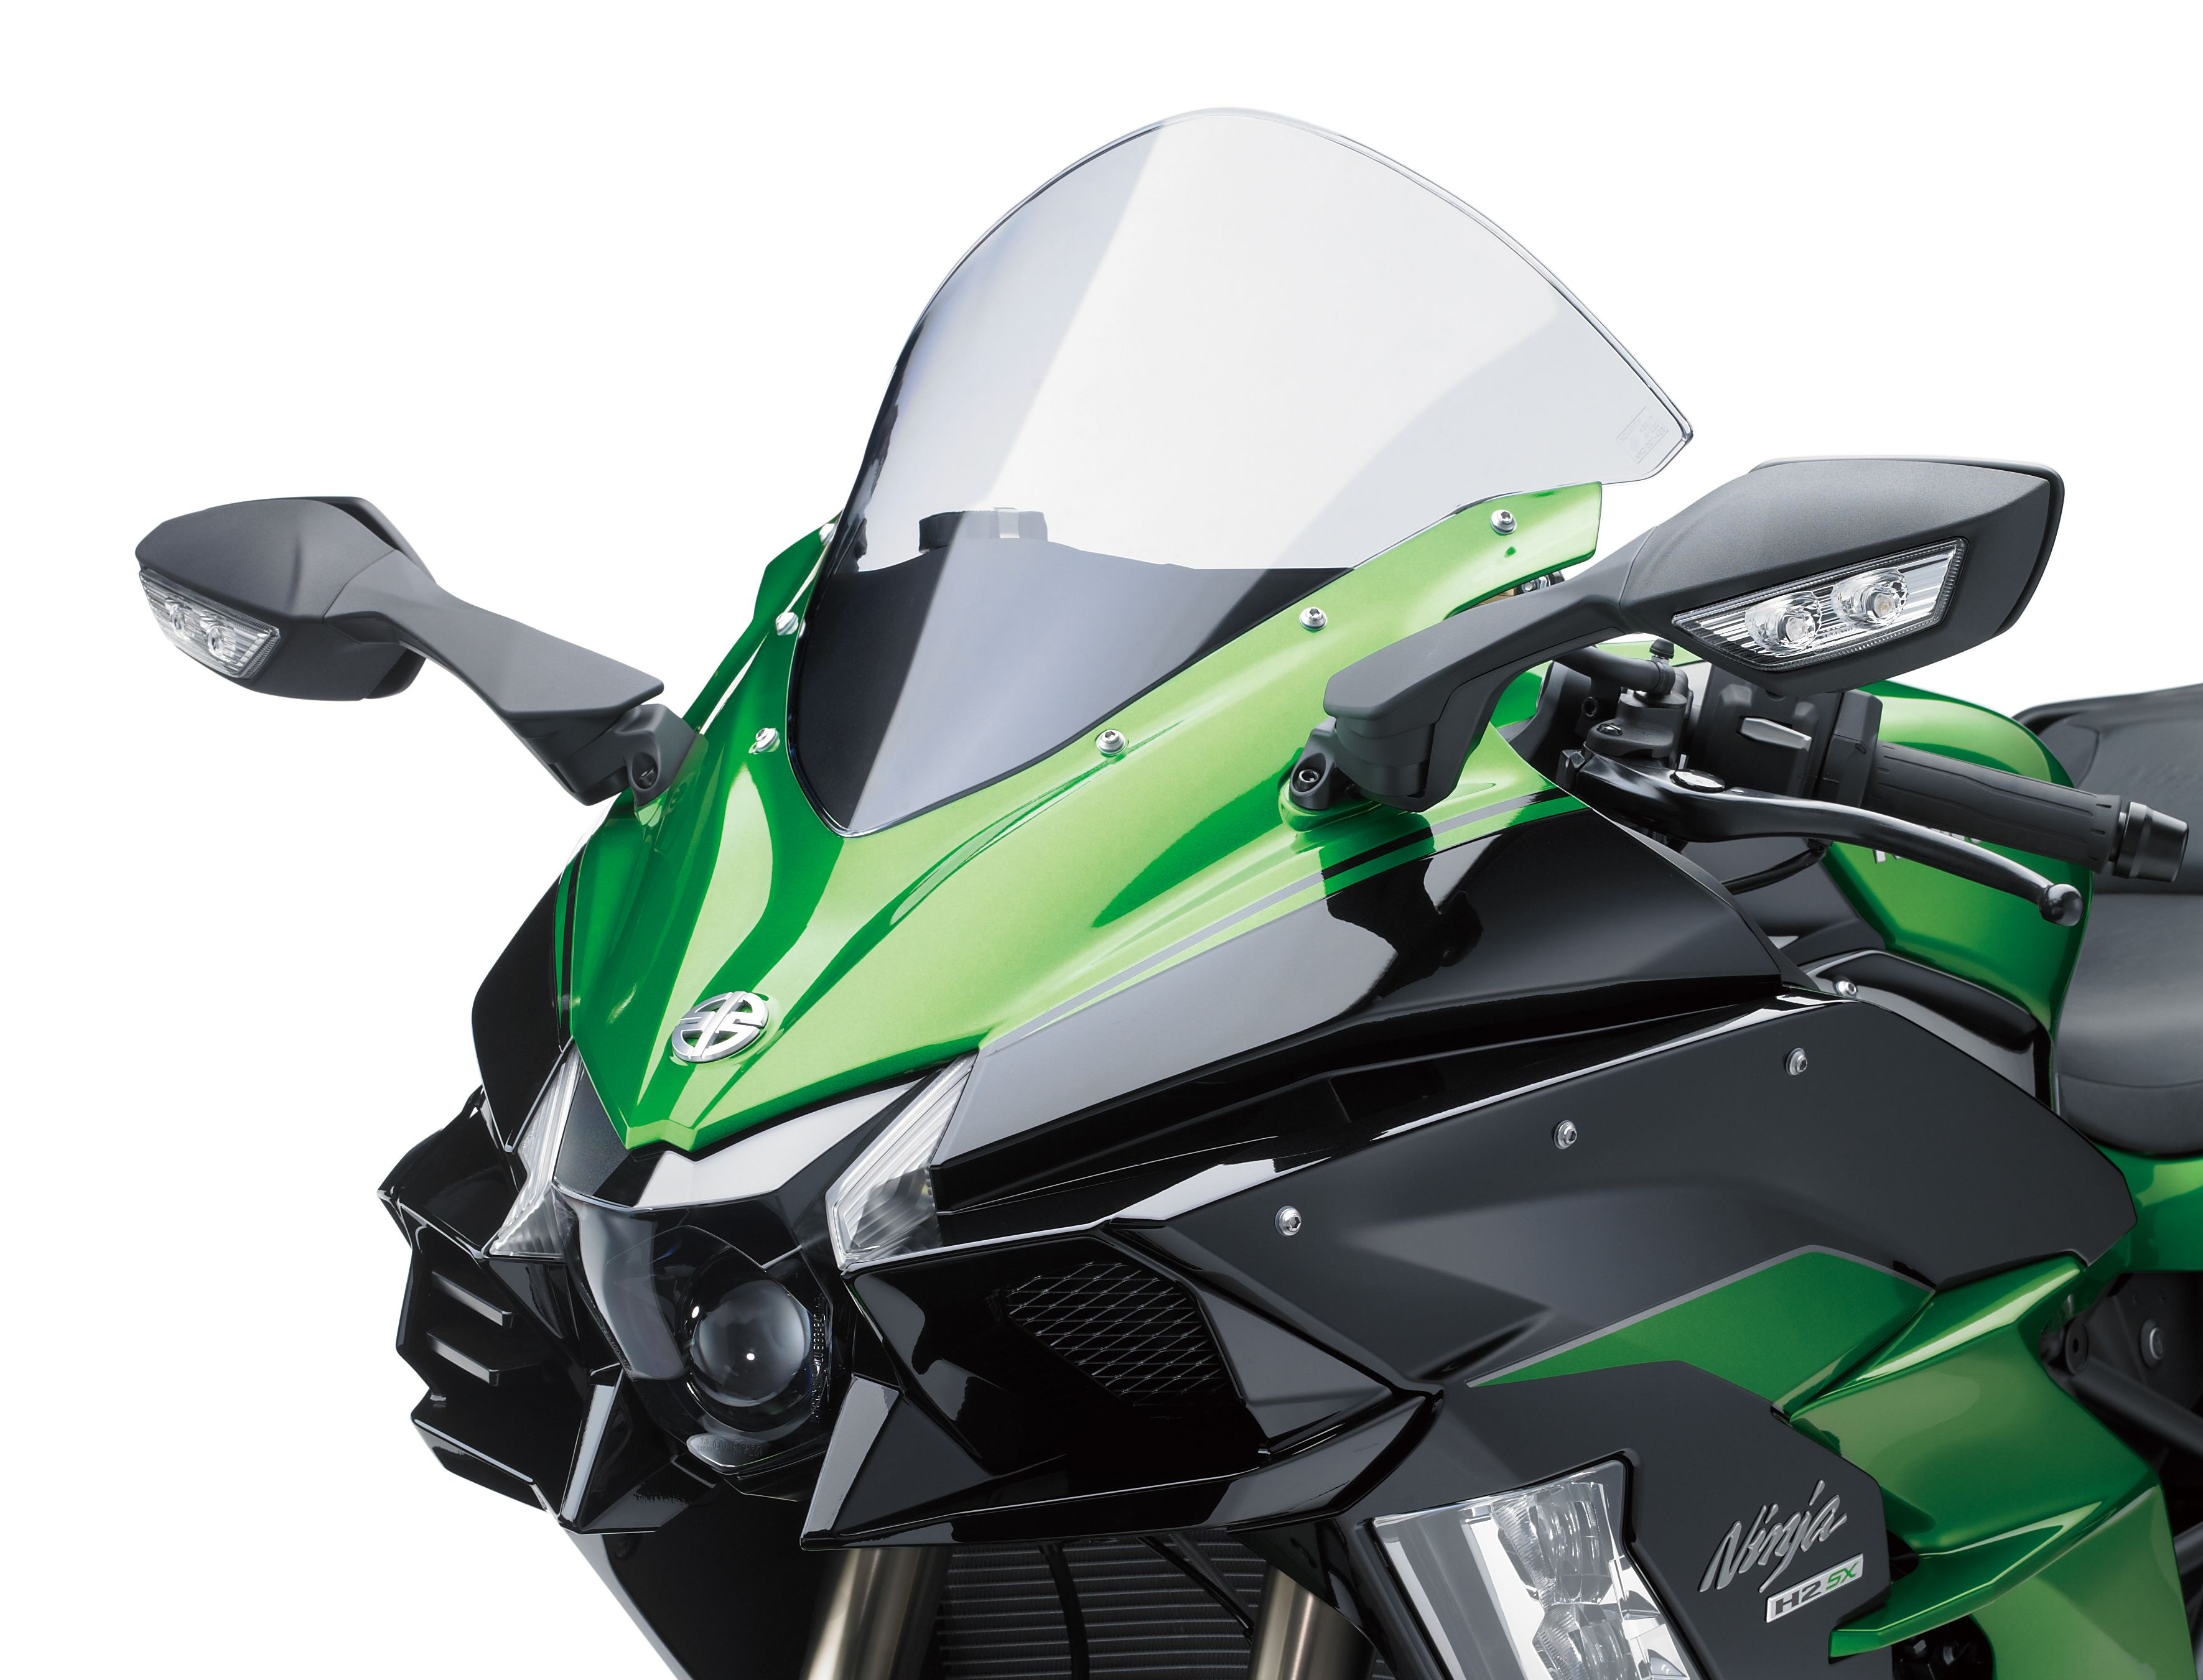 2018 Kawasaki H2 SX Sport-Tourer Debuts—Get Ready To Wet Your Gore